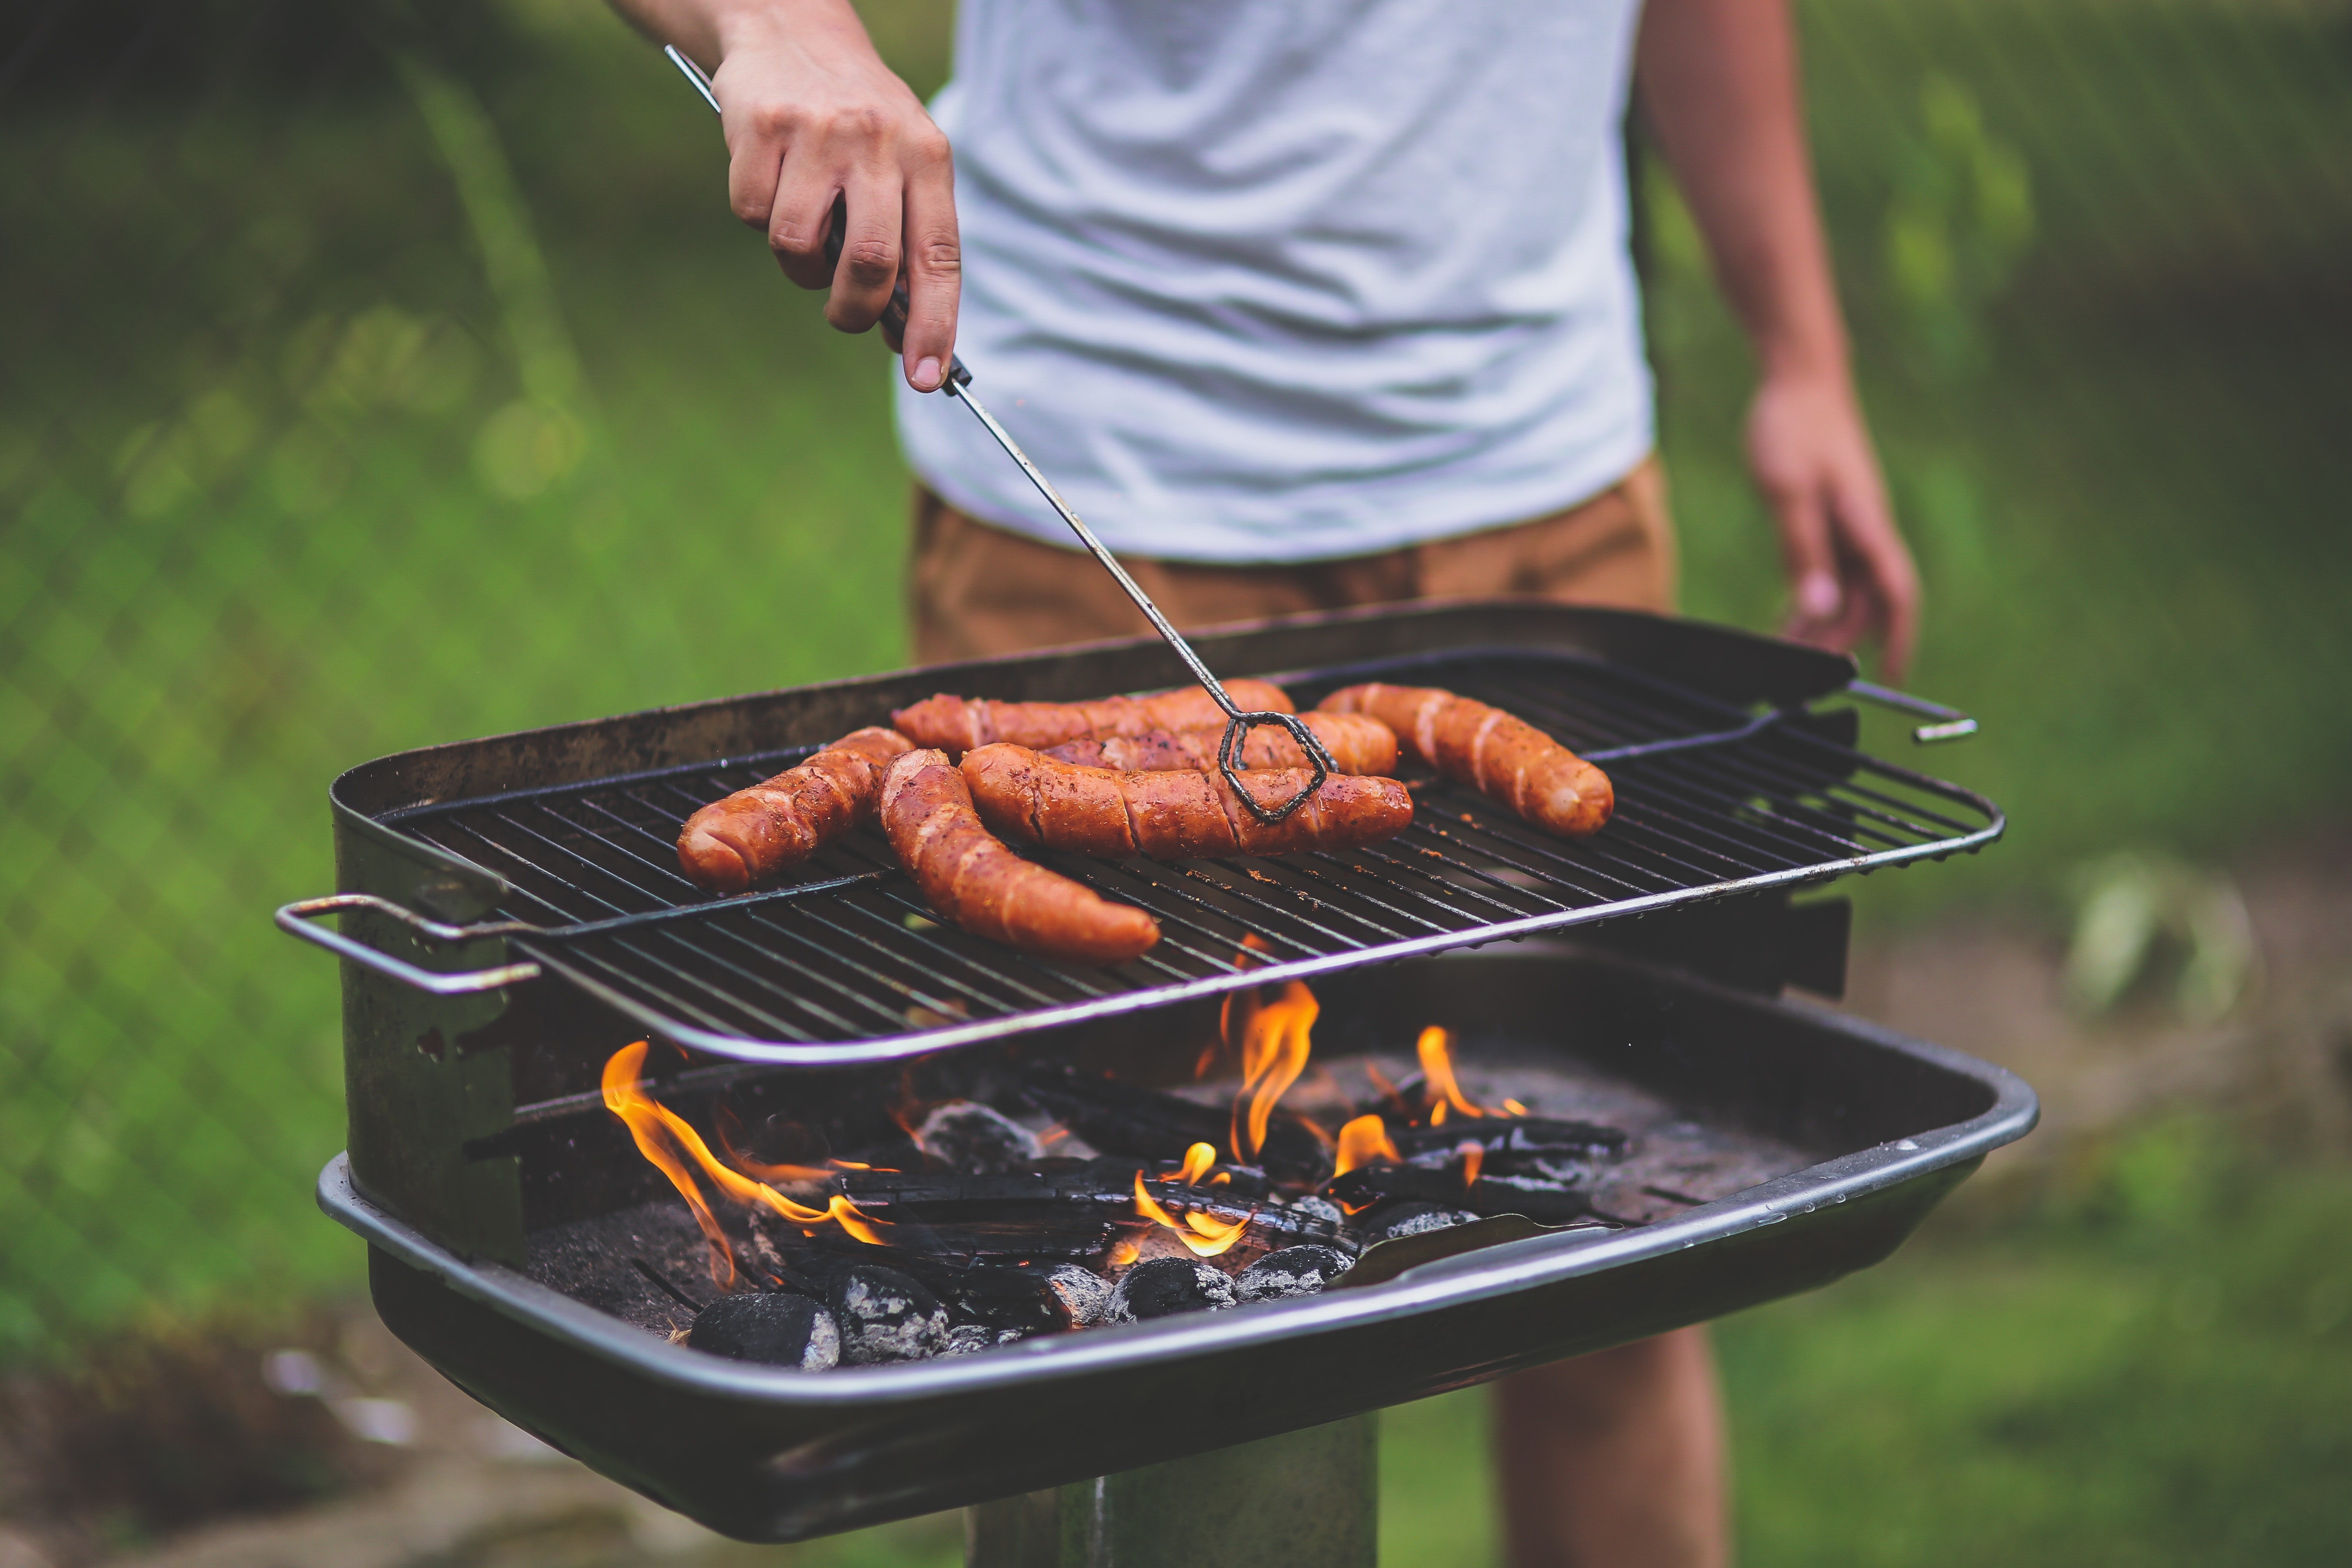 grilling a sausage